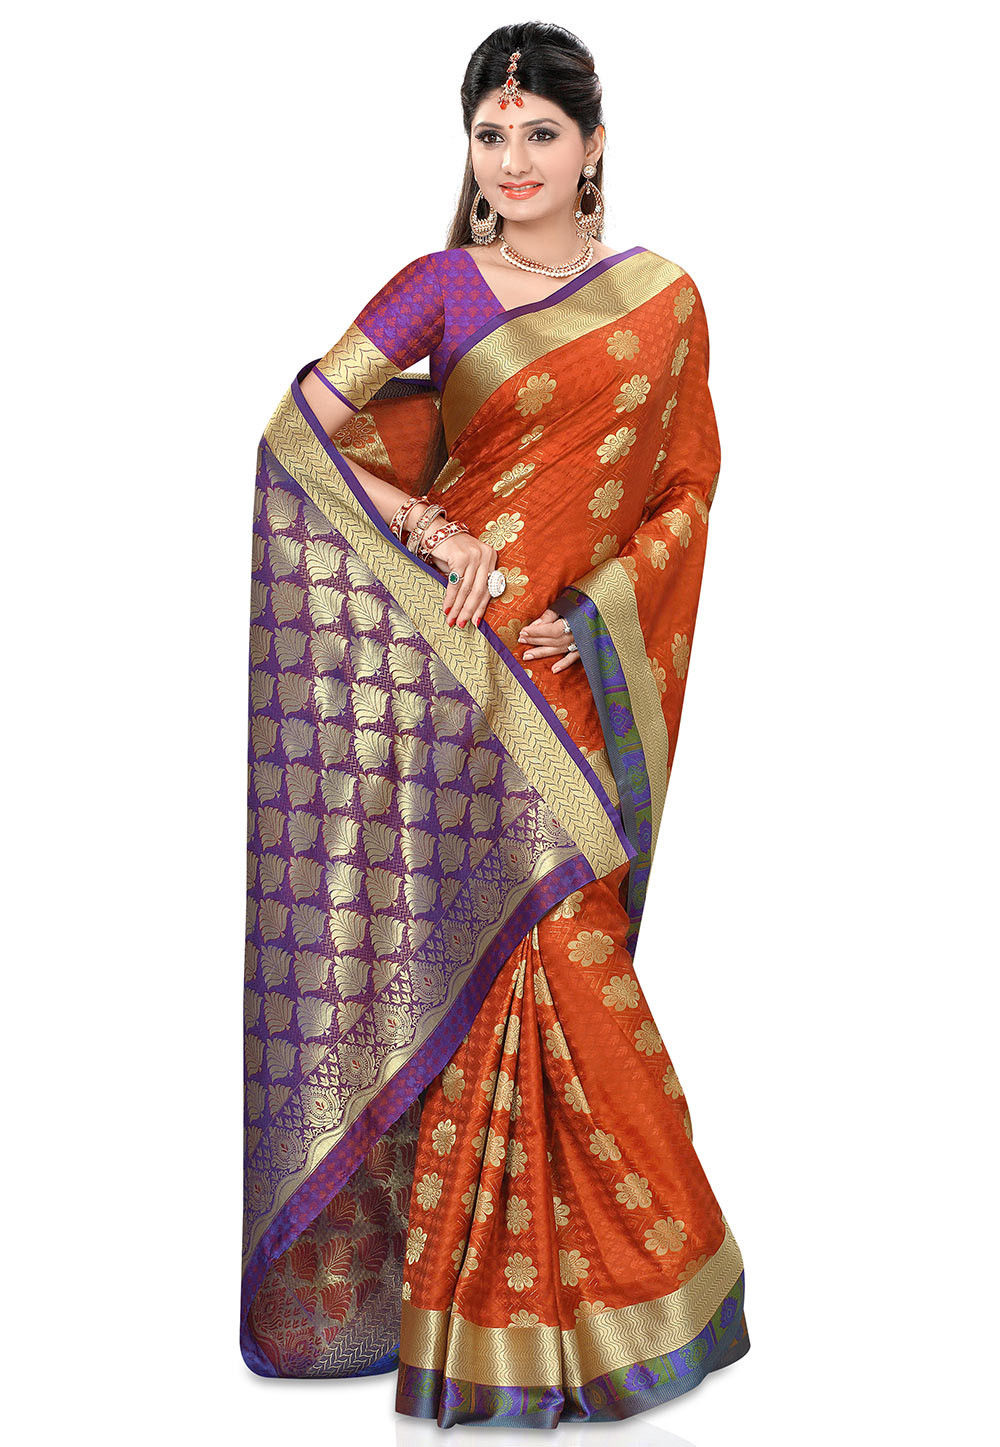 Woven Kanchipuram Saree in Rust